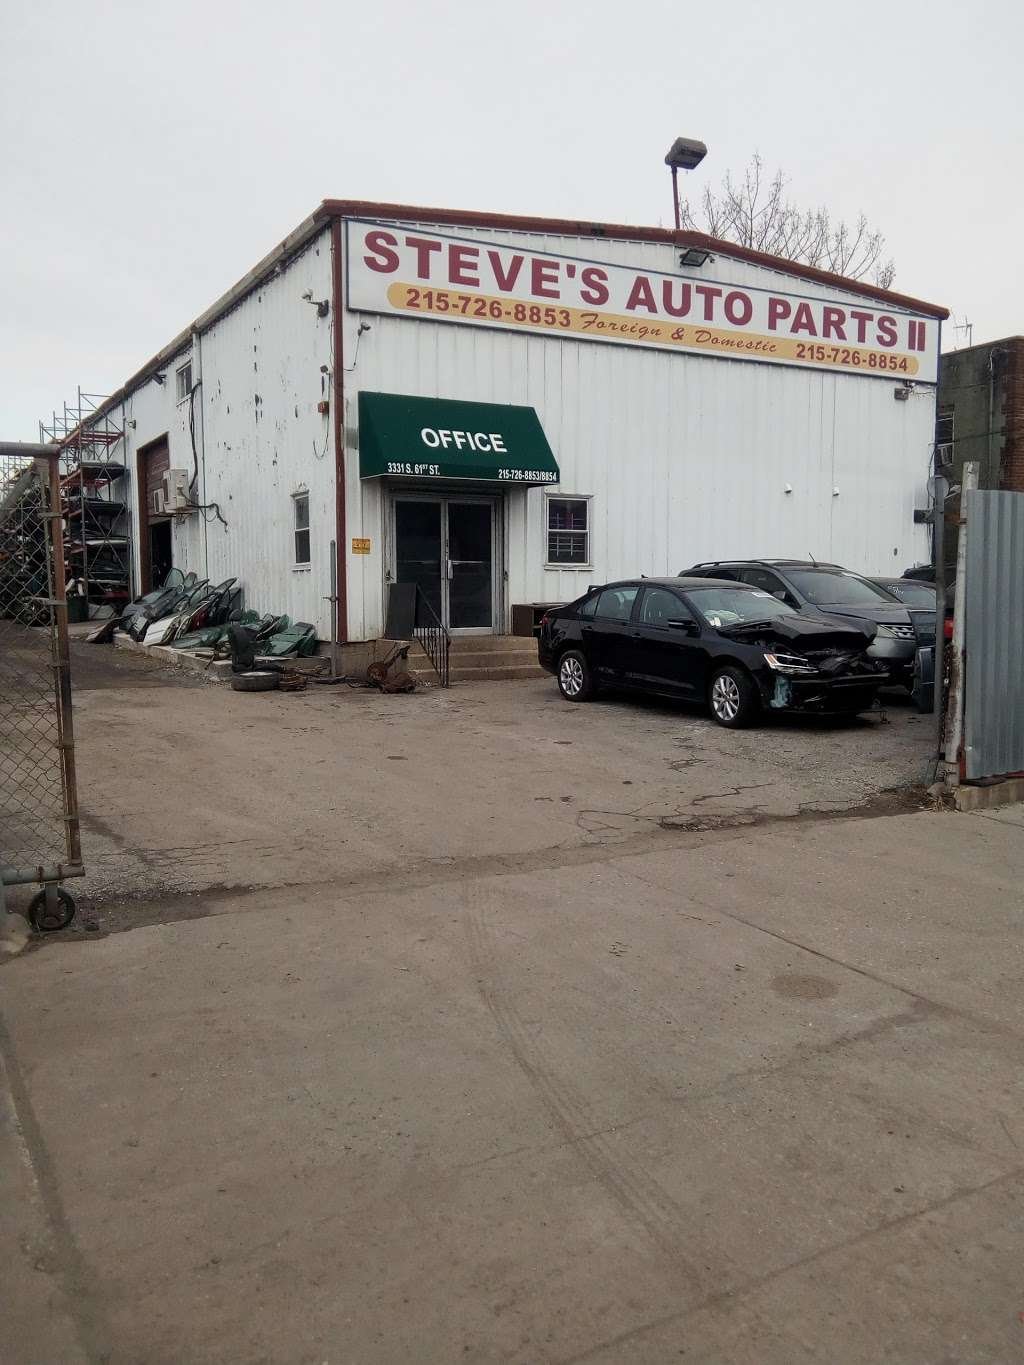 Steves Auto Parts II - car repair  | Photo 1 of 10 | Address: 3331 S 61st St, Philadelphia, PA 19153, USA | Phone: (215) 726-8853